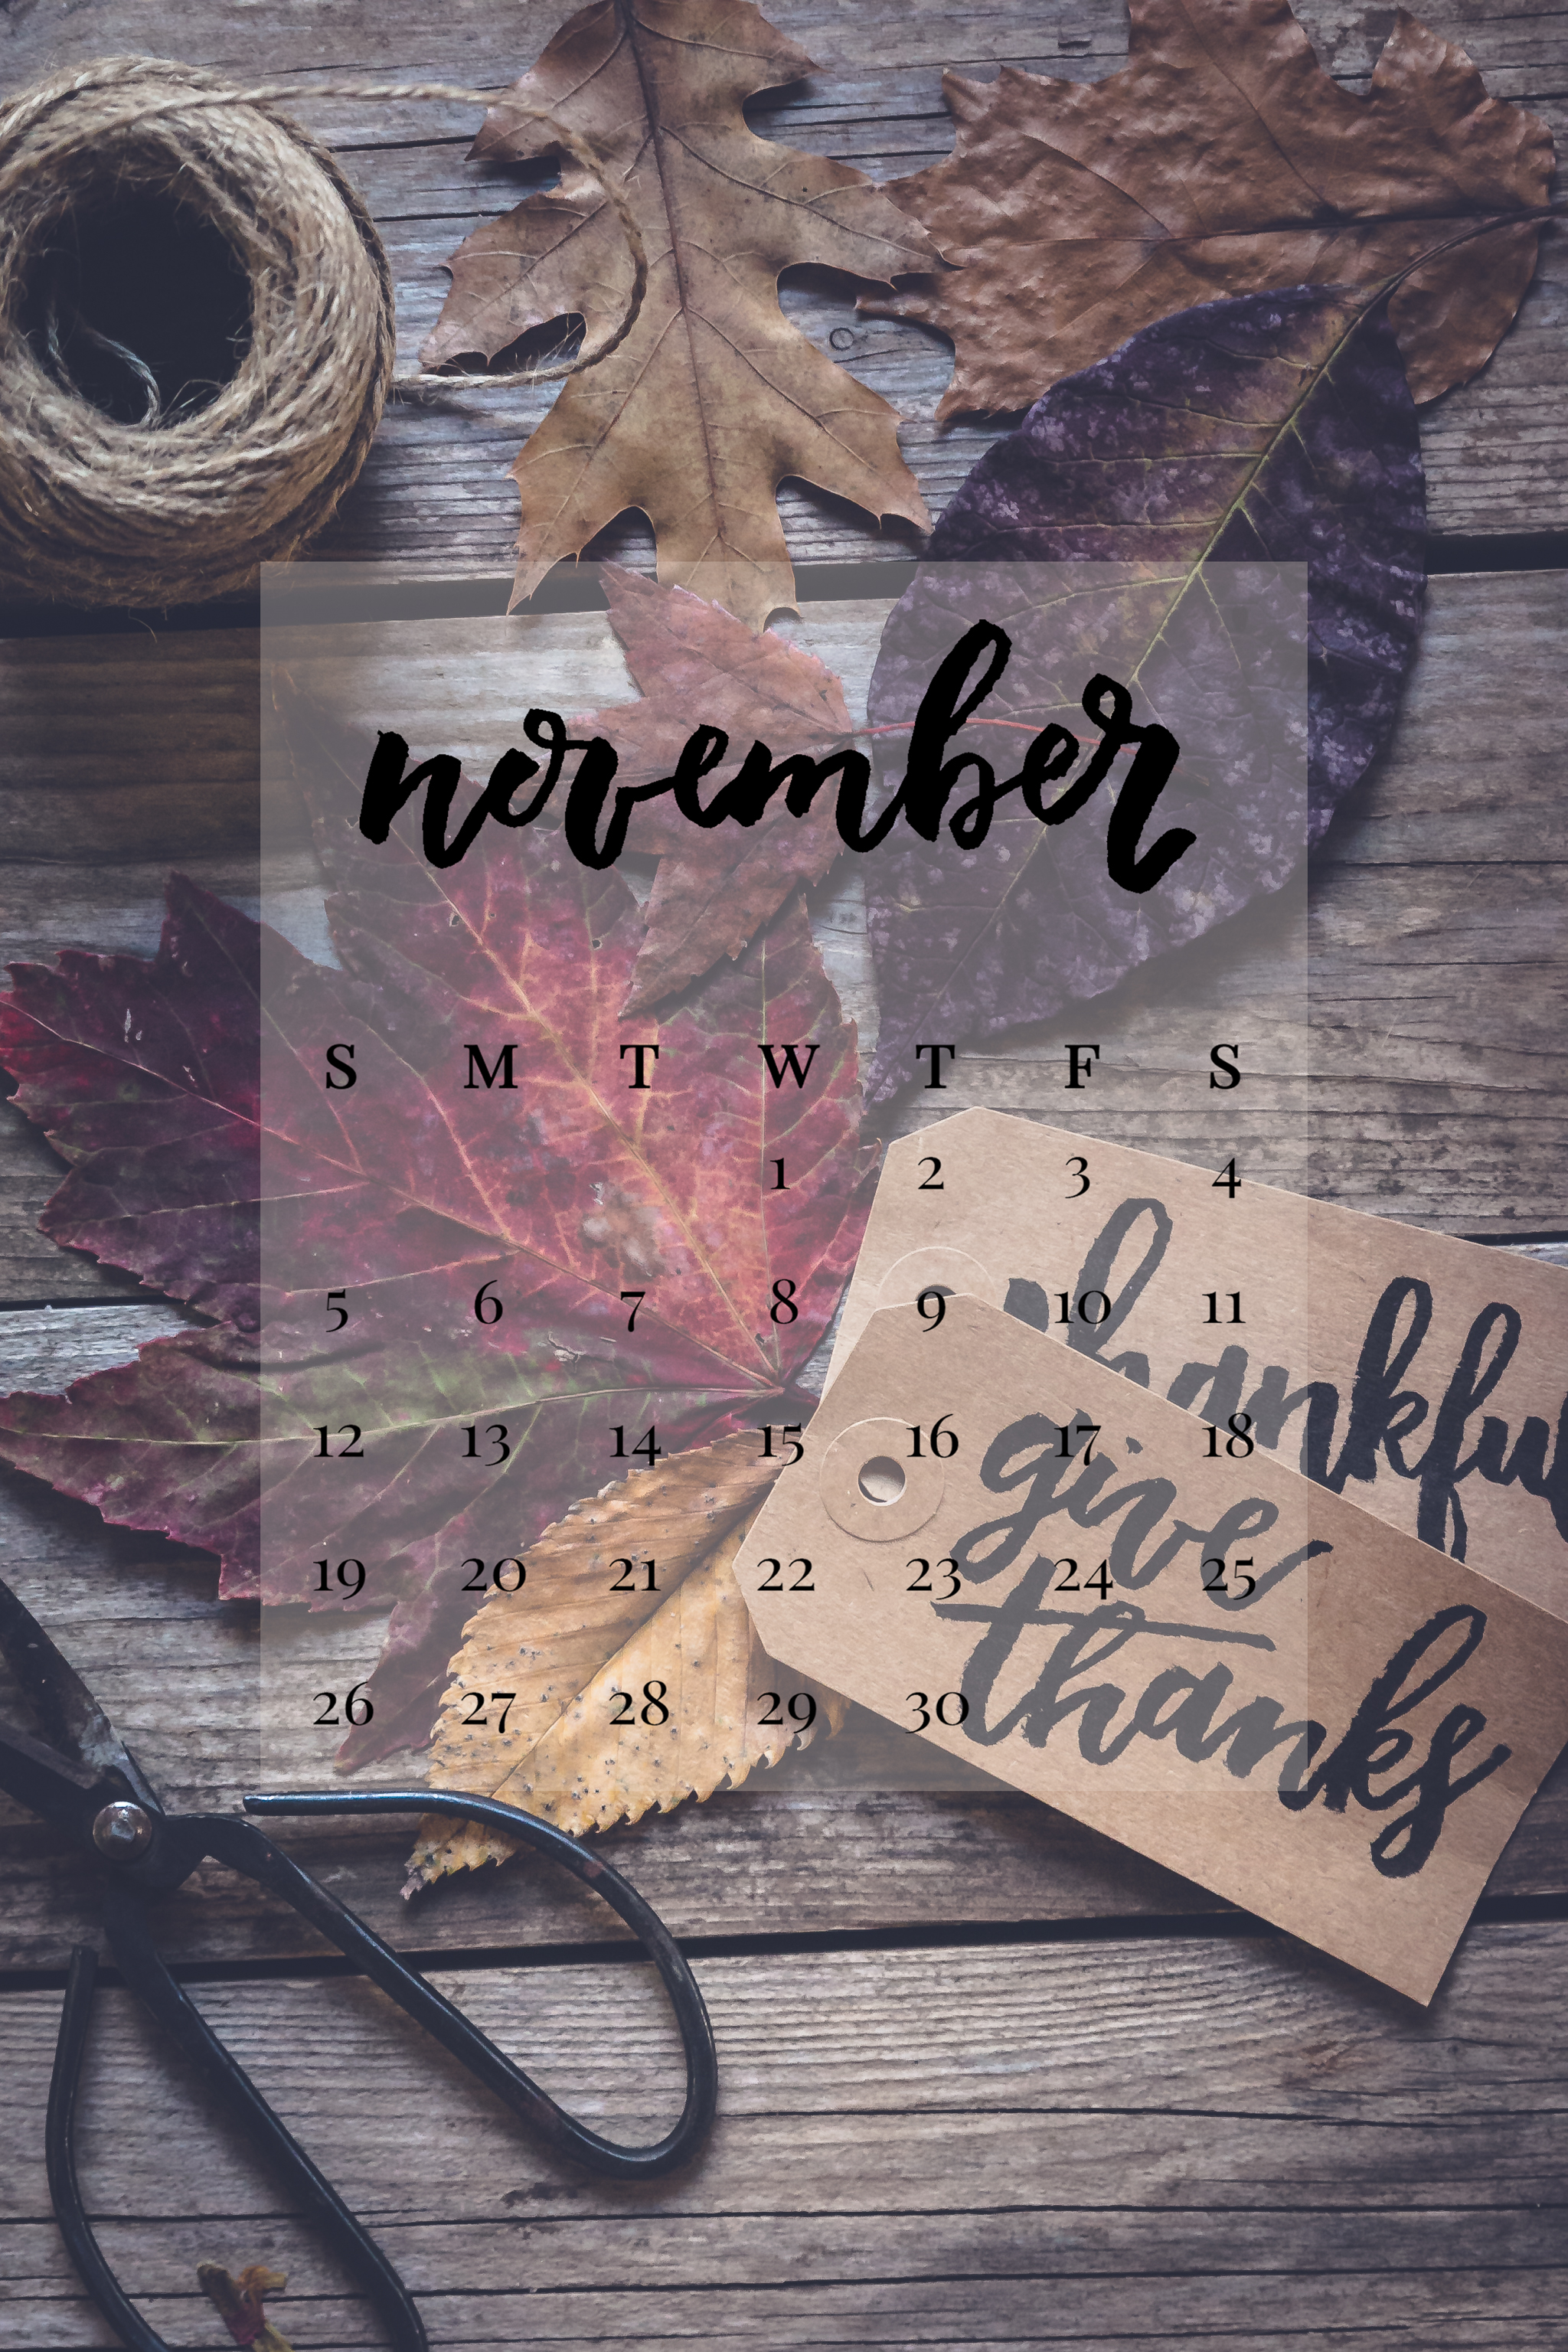 Fall Wallpaper For Desktop Background 2017 Desktop Calendars Minding My Nest